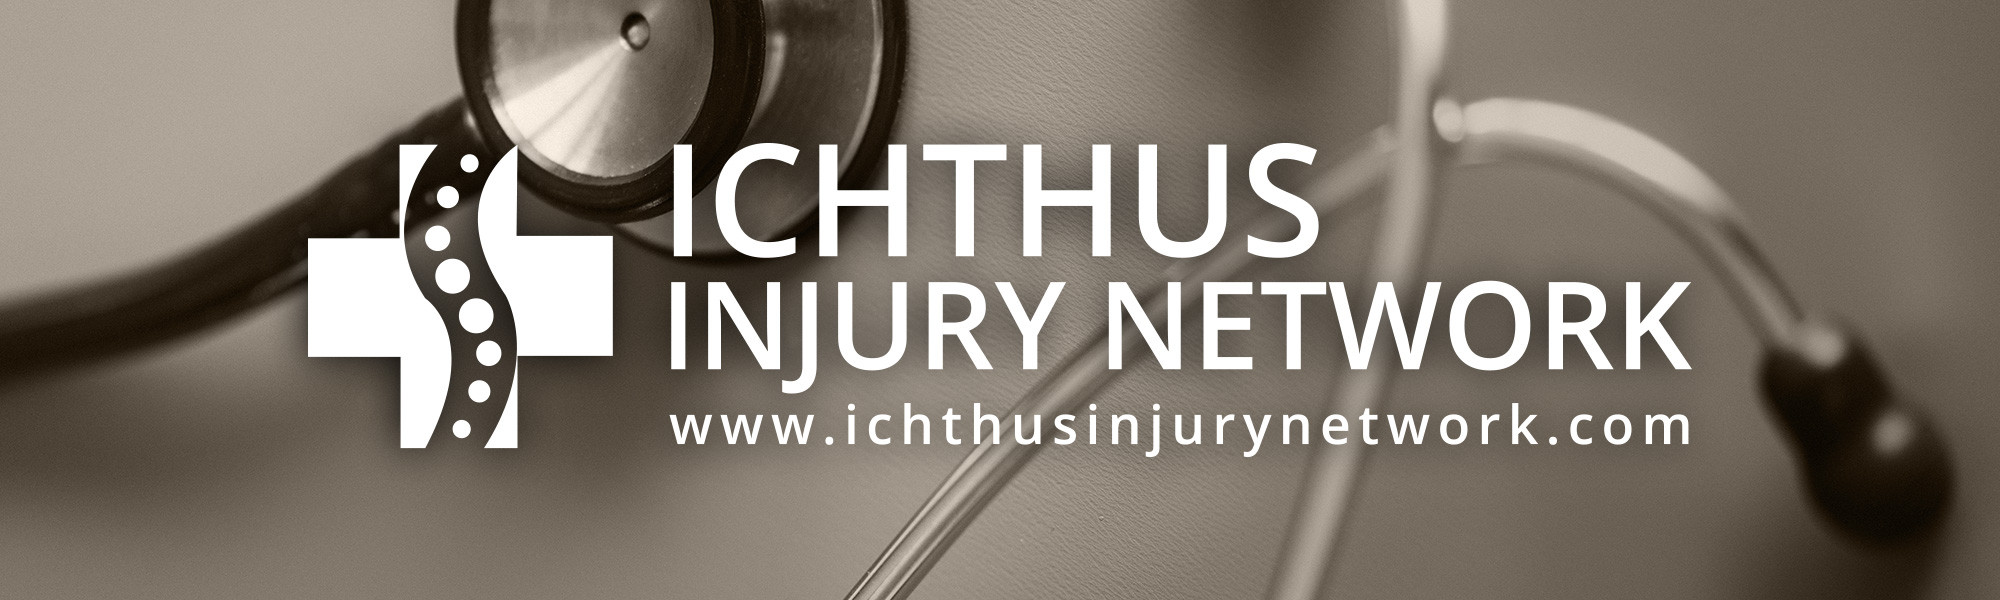 A Proud member of the Ichthus Injury Network